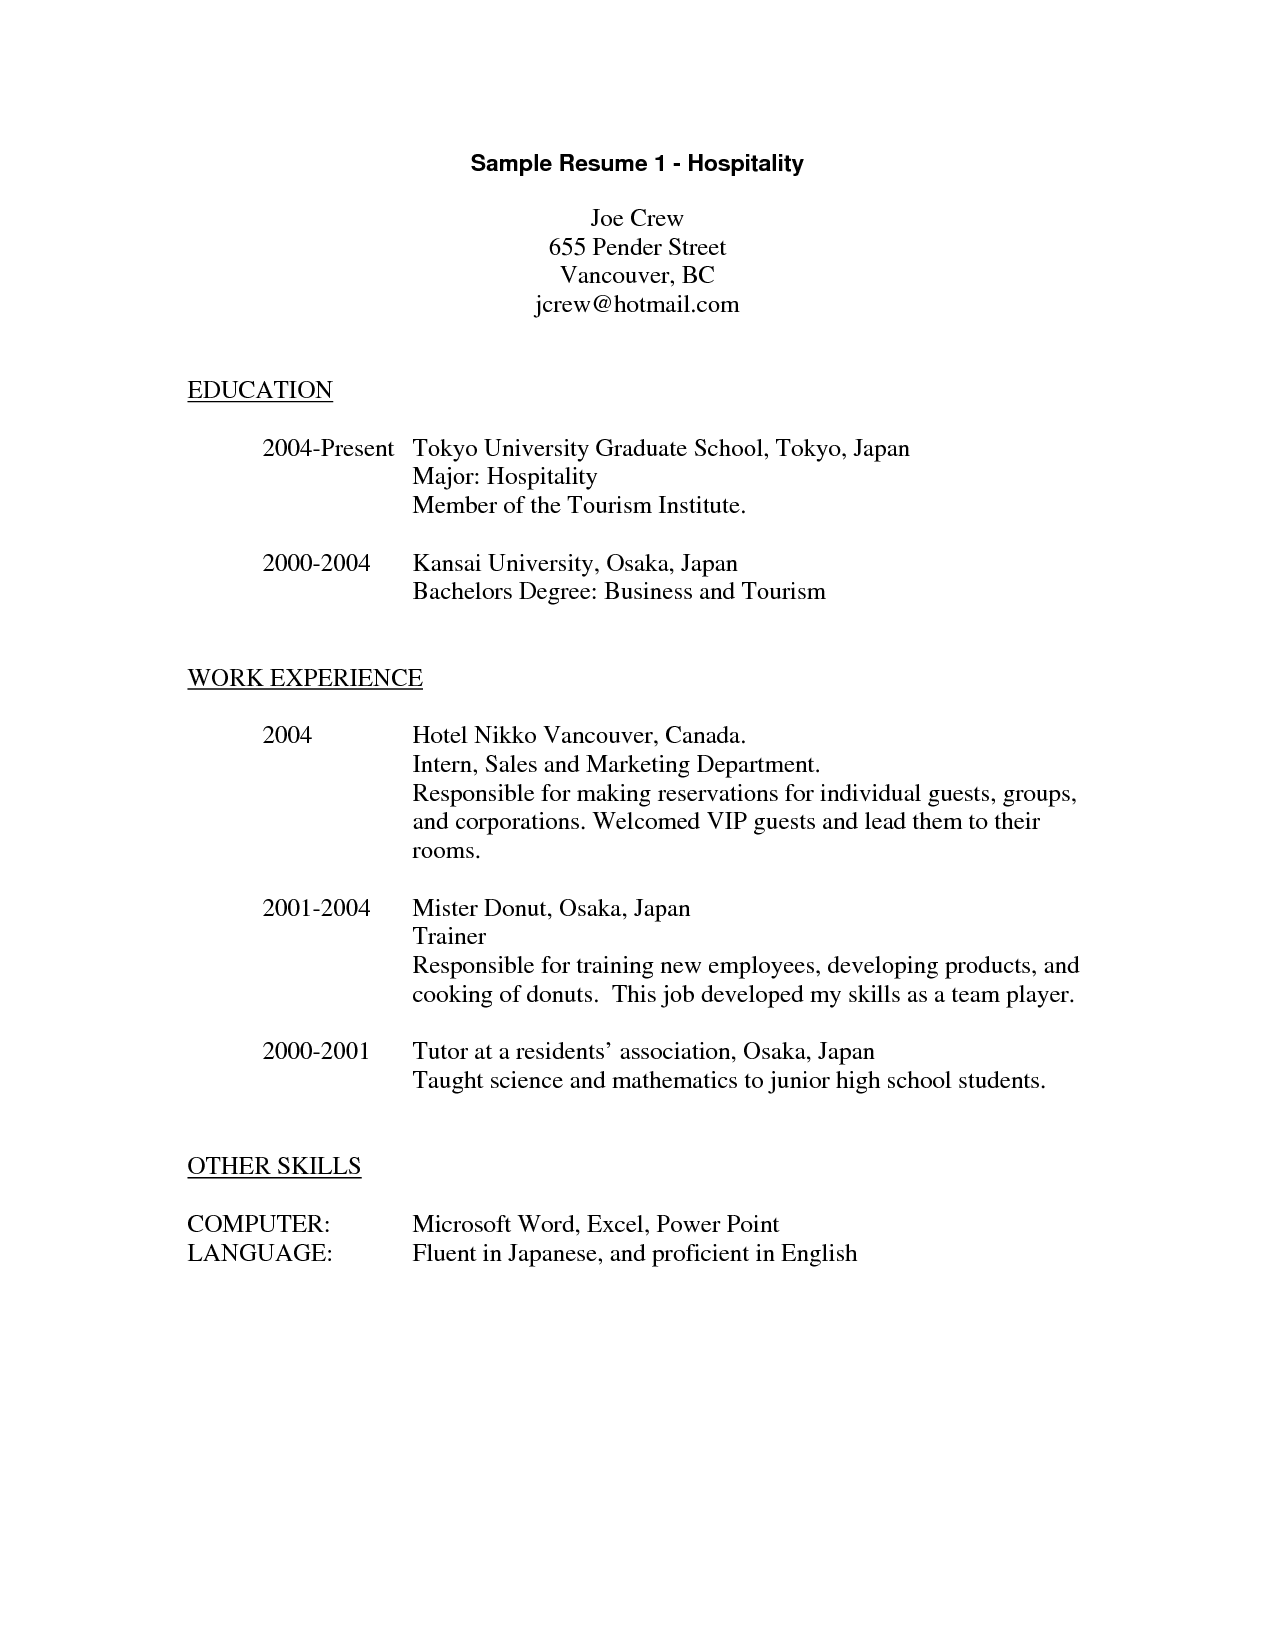 Food Service Worker Resume Sample Resume For Hospitality Industry Sample Resume For